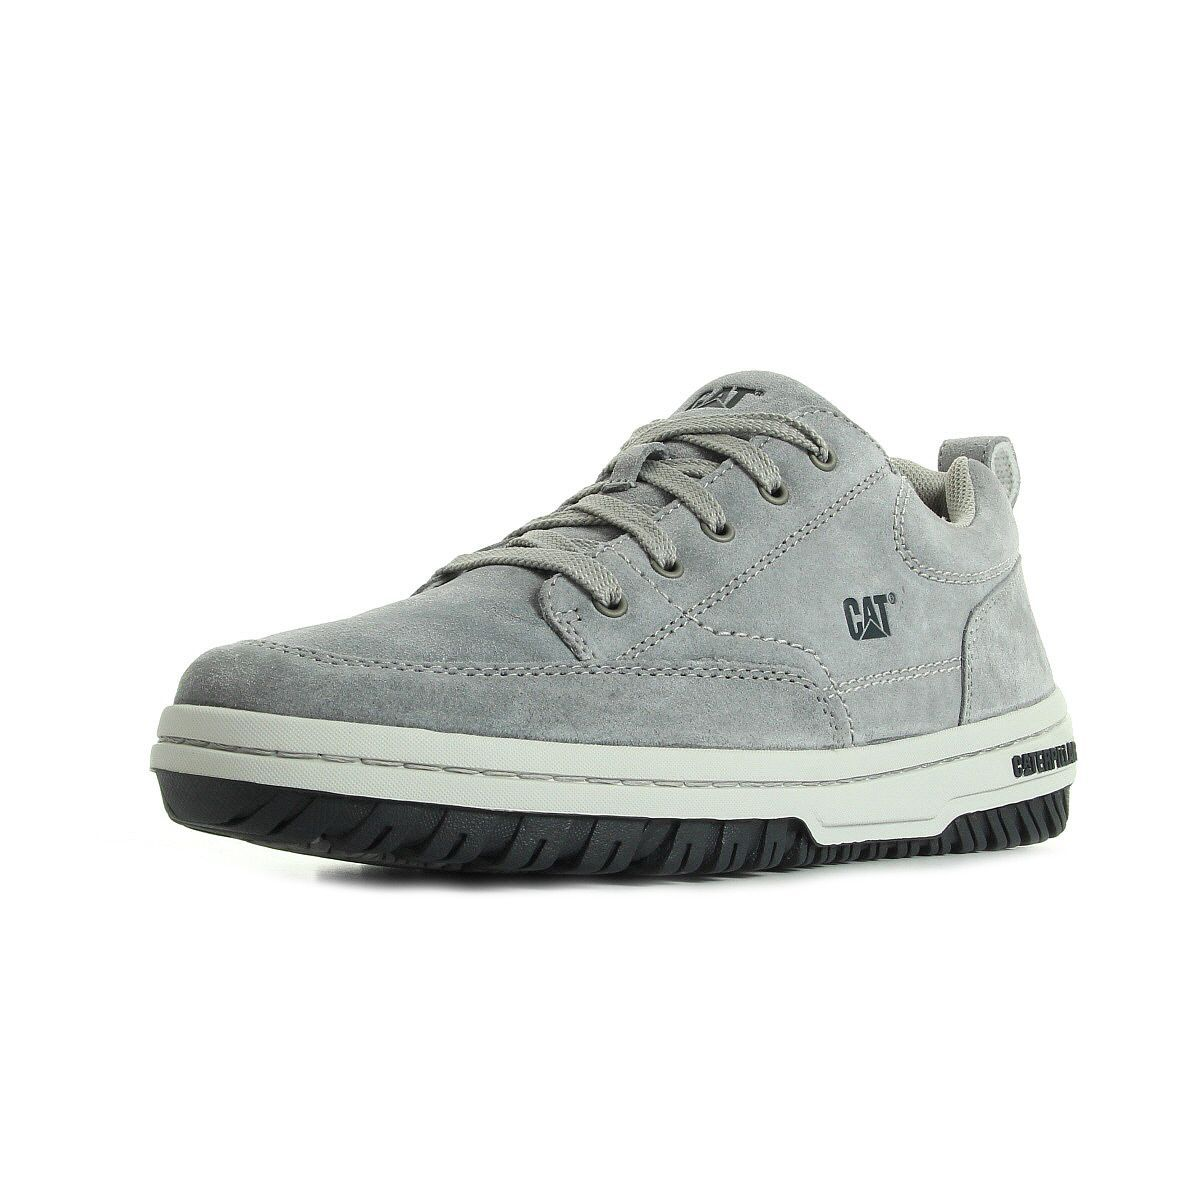 Caterpillar Decade Suede Taille : 44;40;45;41;42;43;46